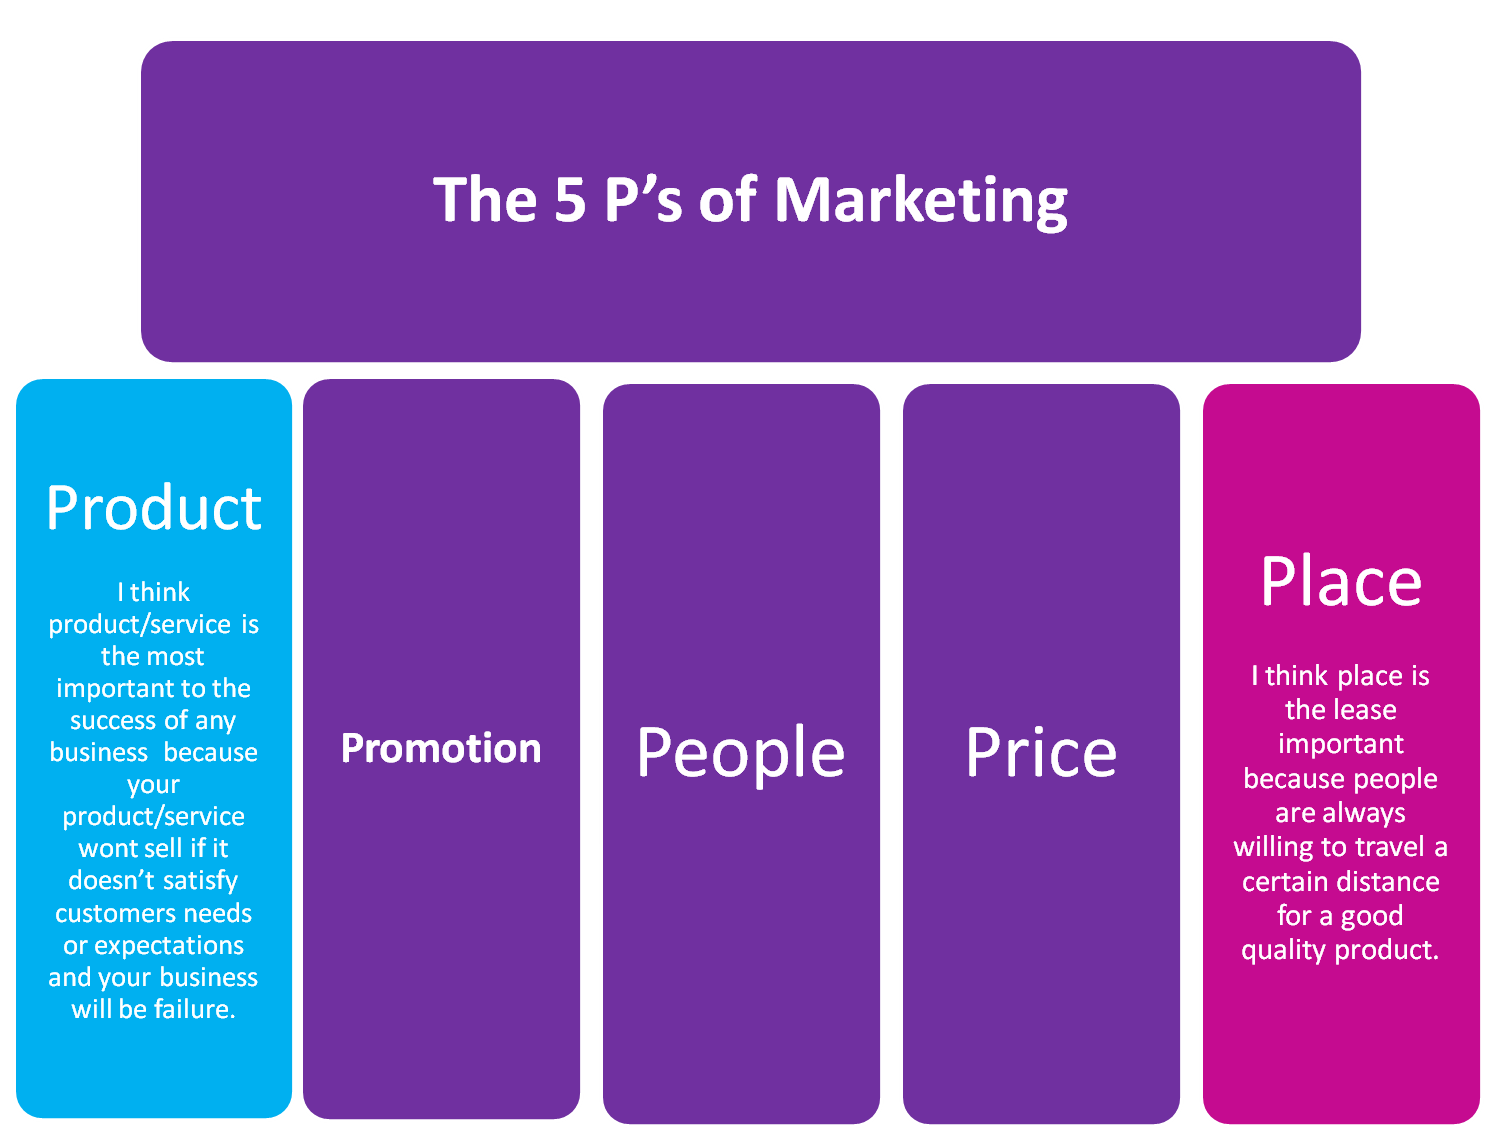 suggestion for place p of marketing mix